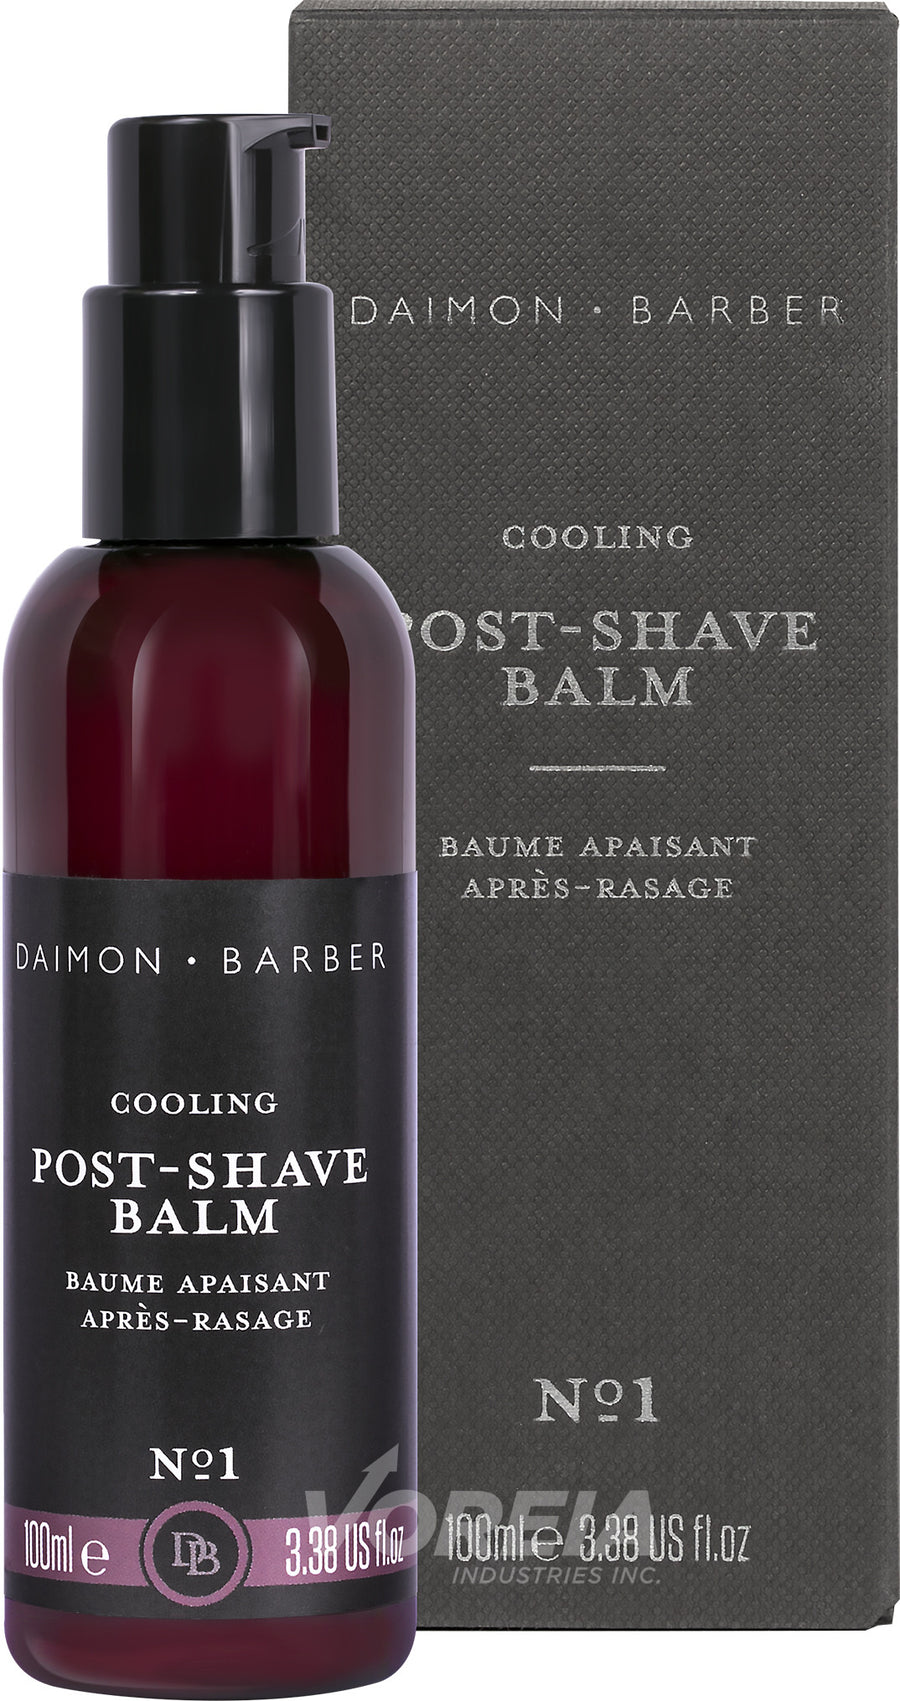 Daimon Barber Post Shave Balm 100ml